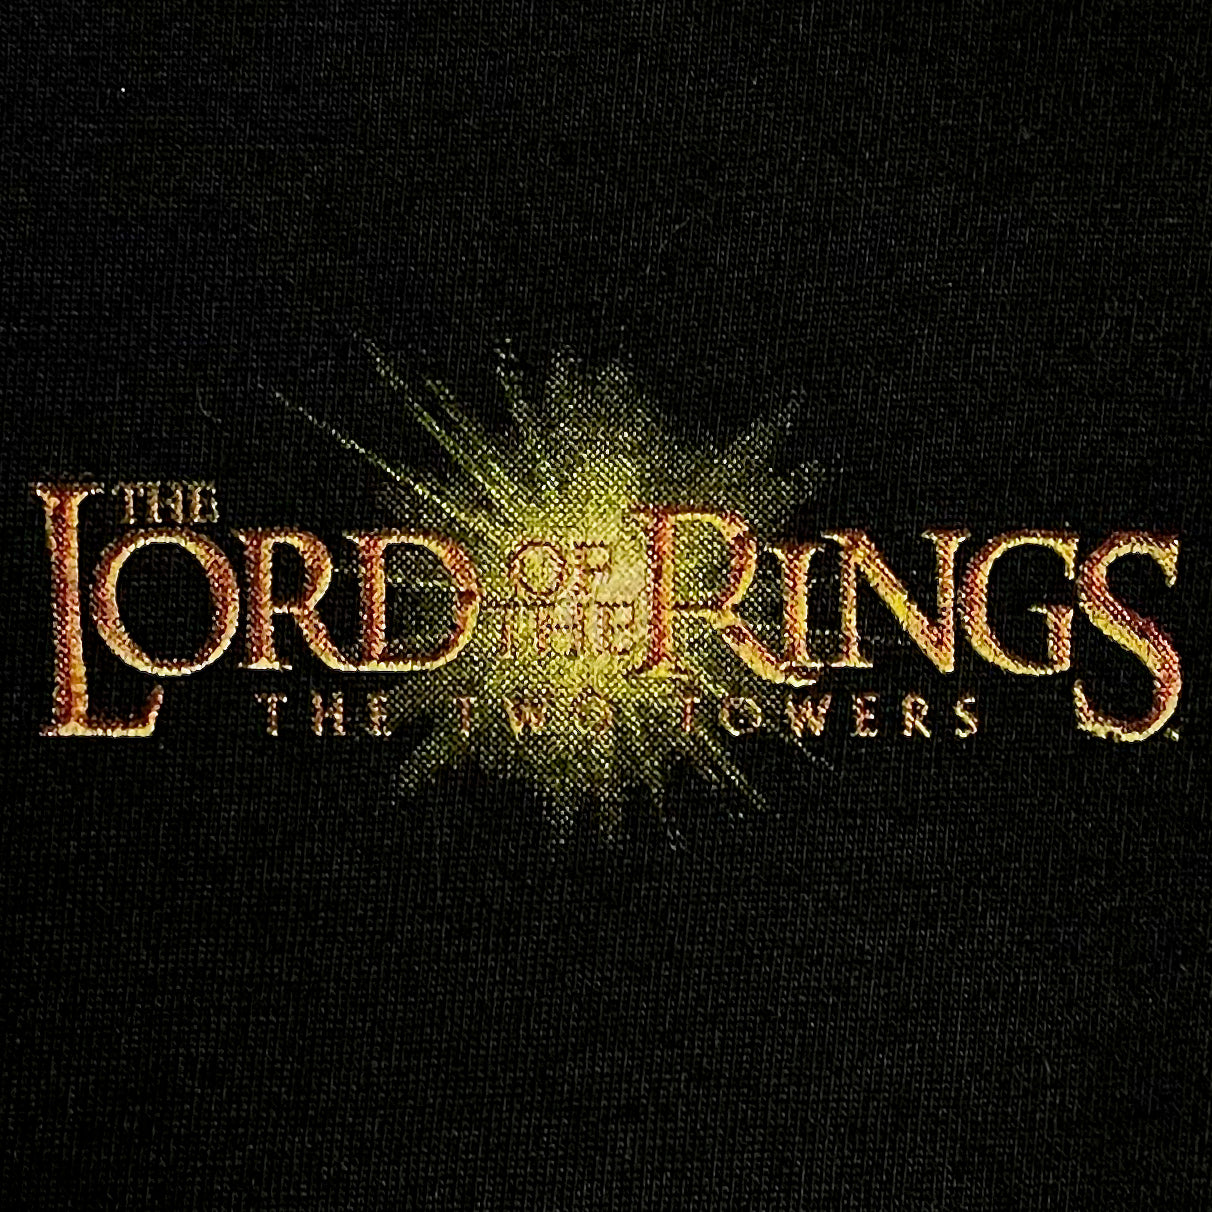 2002 LORD OF THE RINGS: THE TWO TOWERS (SMALL)